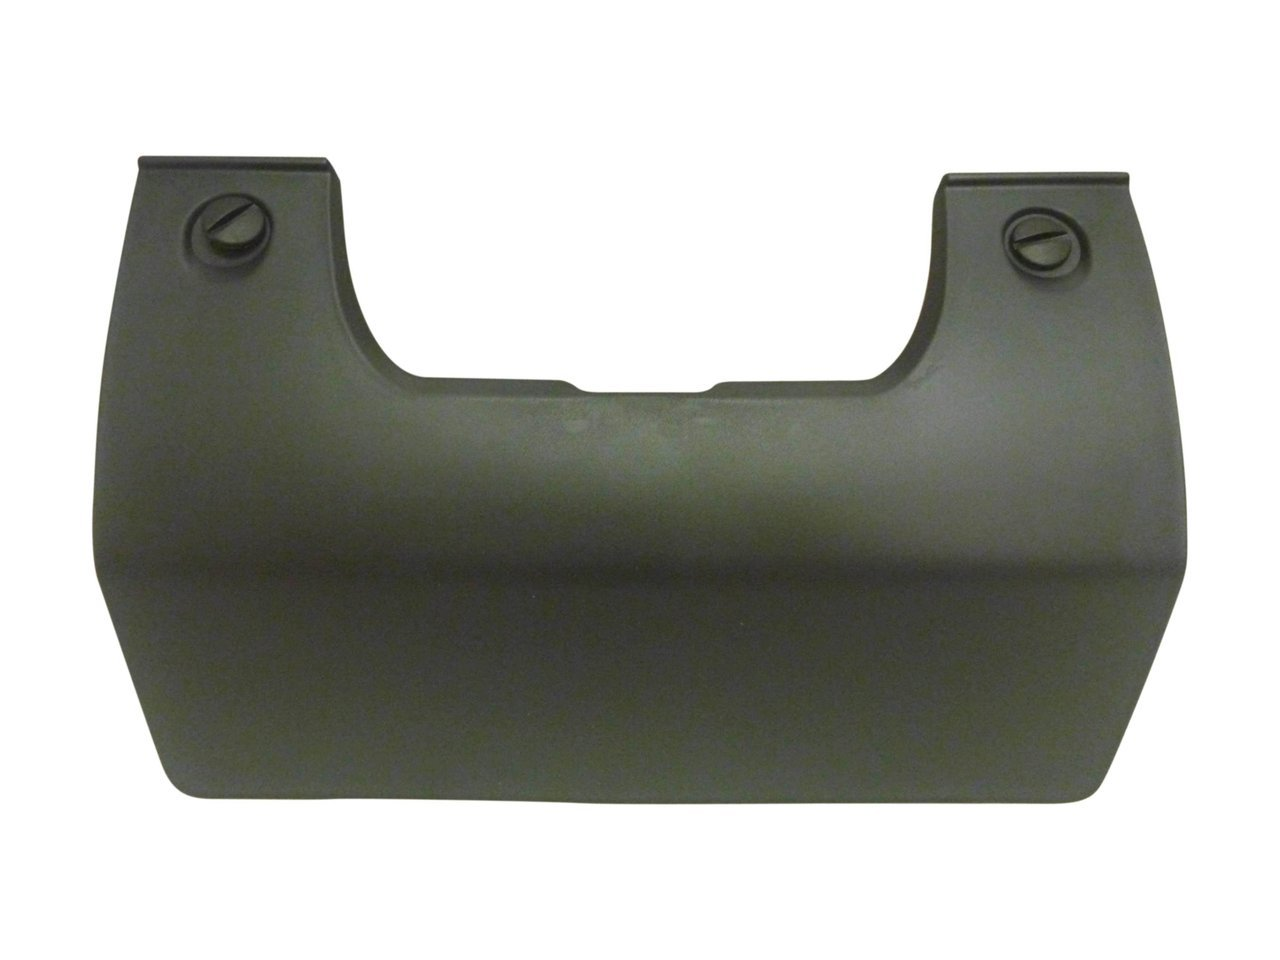 Genuine Land Rover Discovery 3 /&  4 Rear Bumper Tow Eye Cover DPO500011PCL